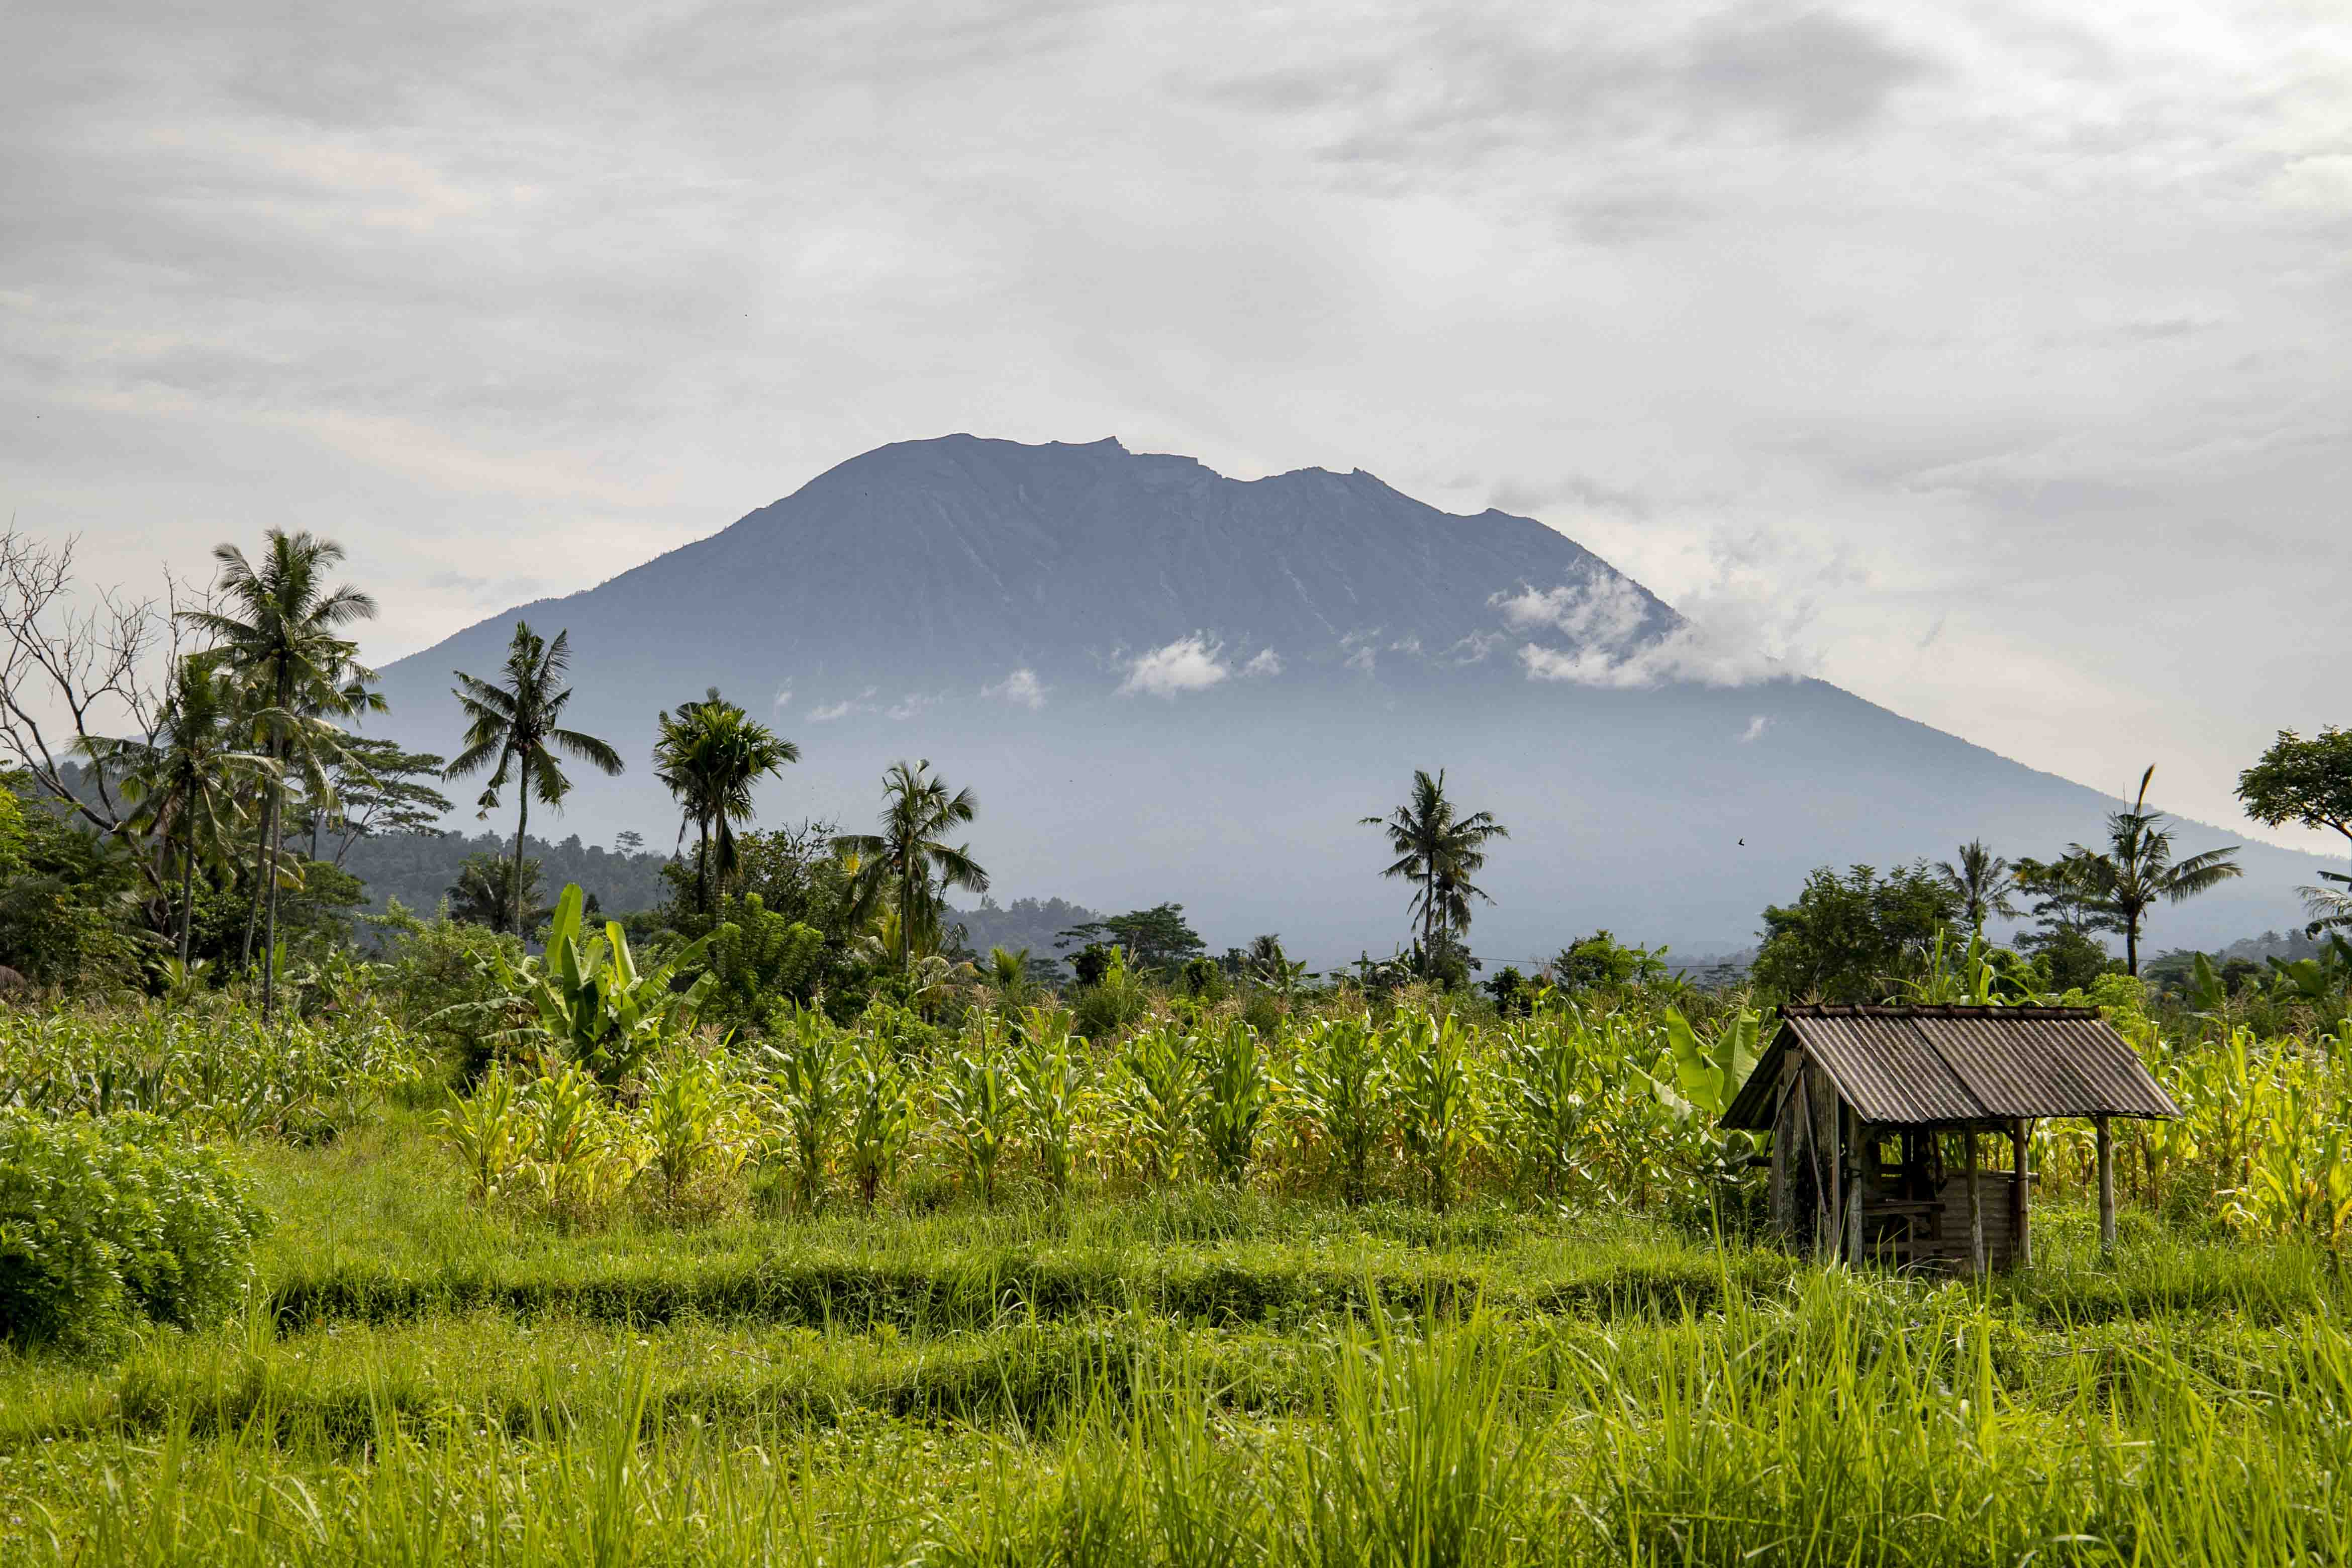 Mighty Mt. Agung